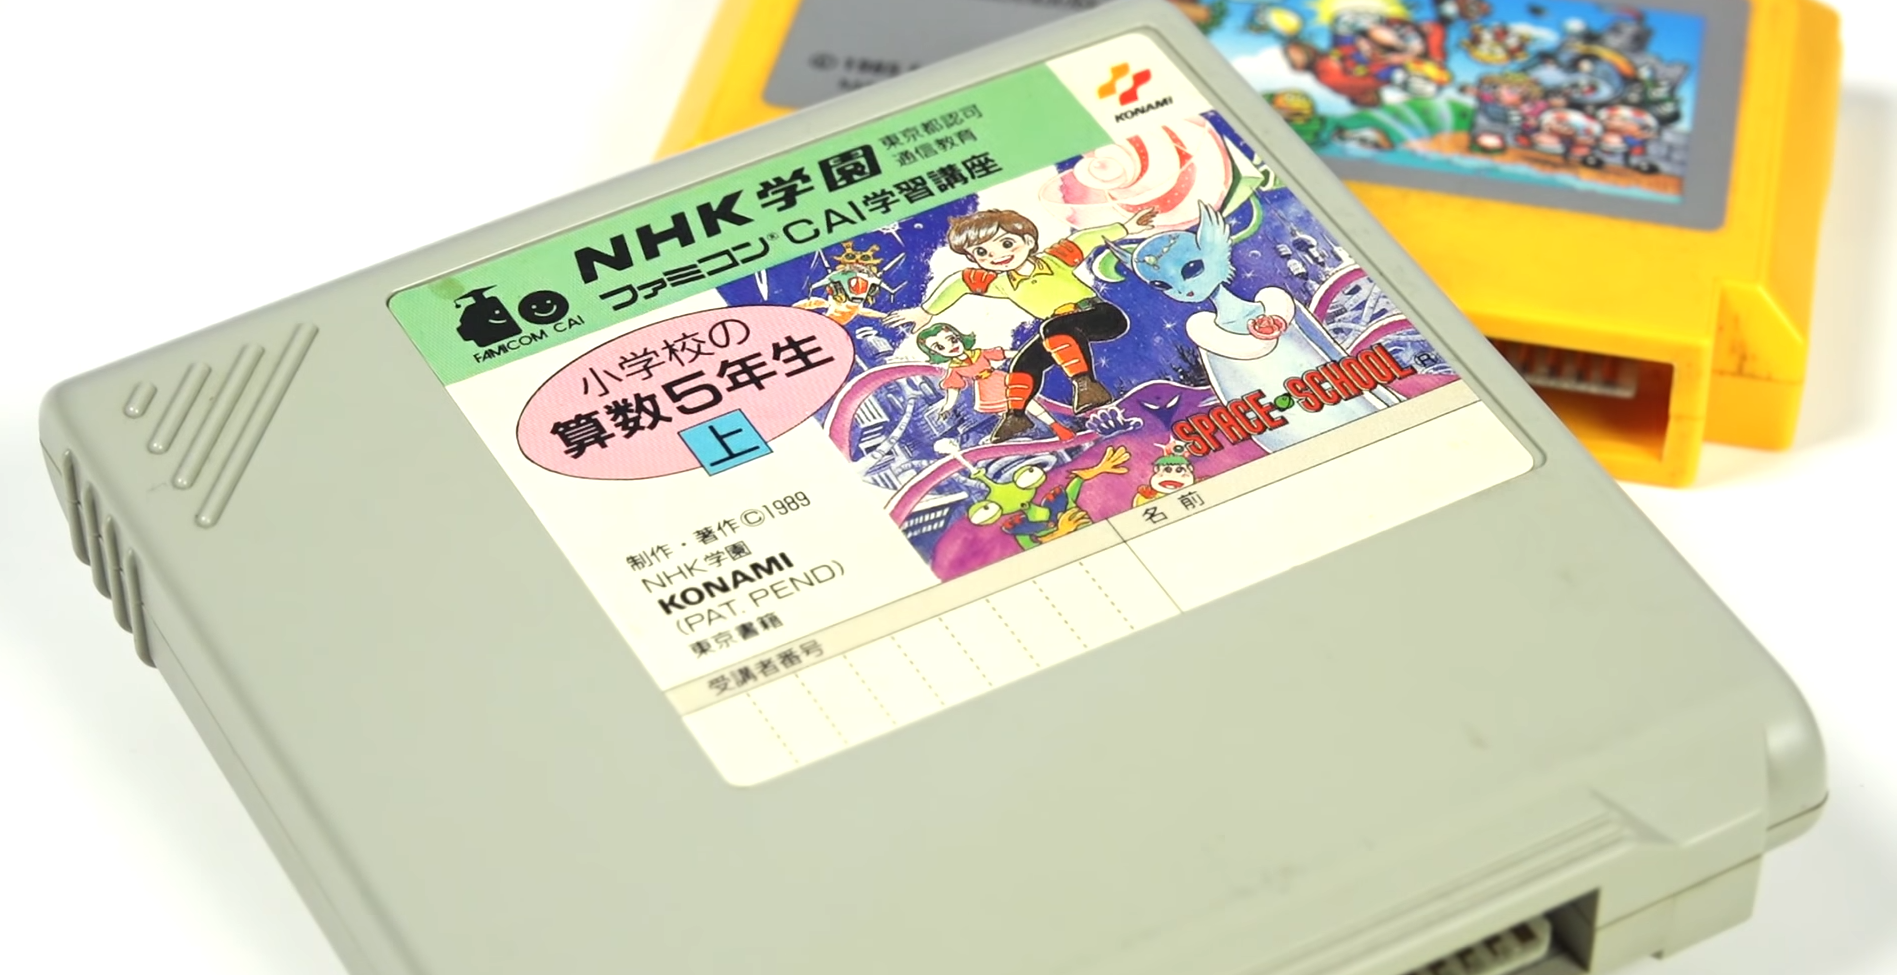 Ultra-rare NES-era Konami games discovered, already emulated